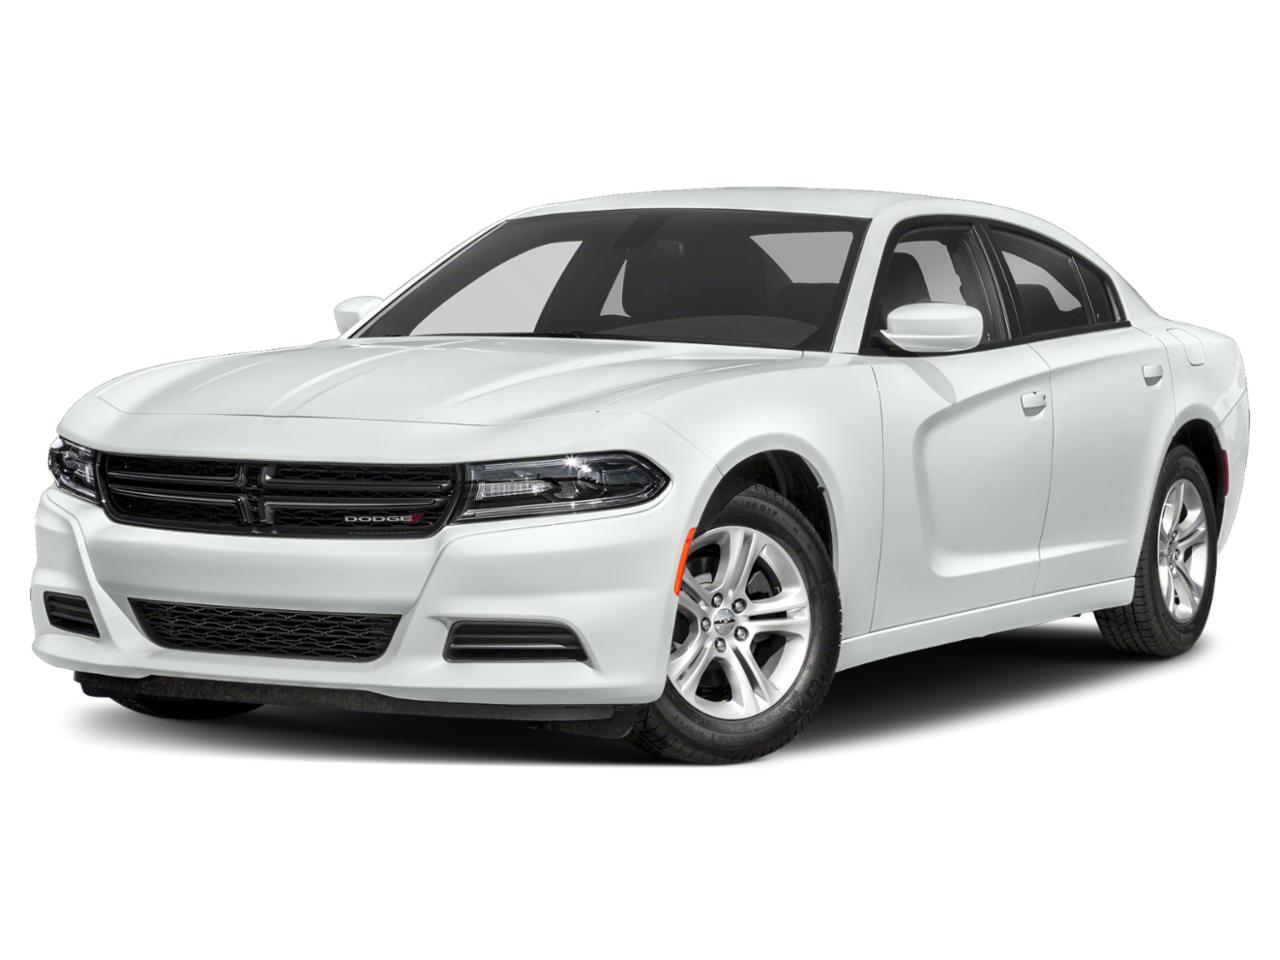 2019 Dodge Charger Vehicle Photo in Fort Worth, TX 76116